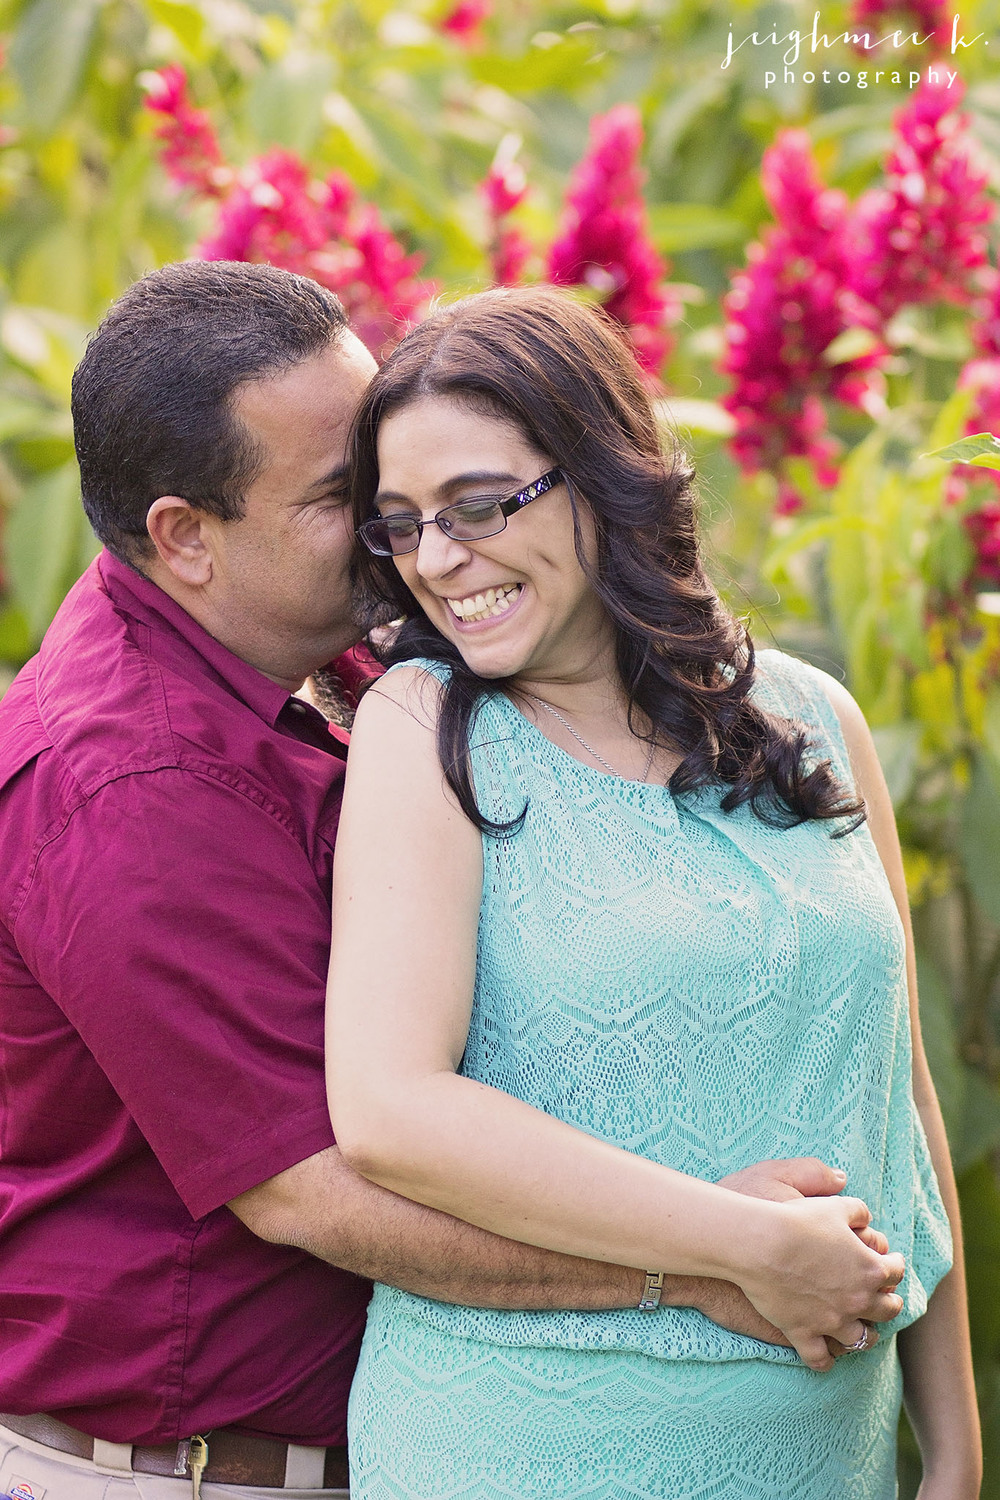 Caguas Botanical Garden Engagement Session 4.jpg